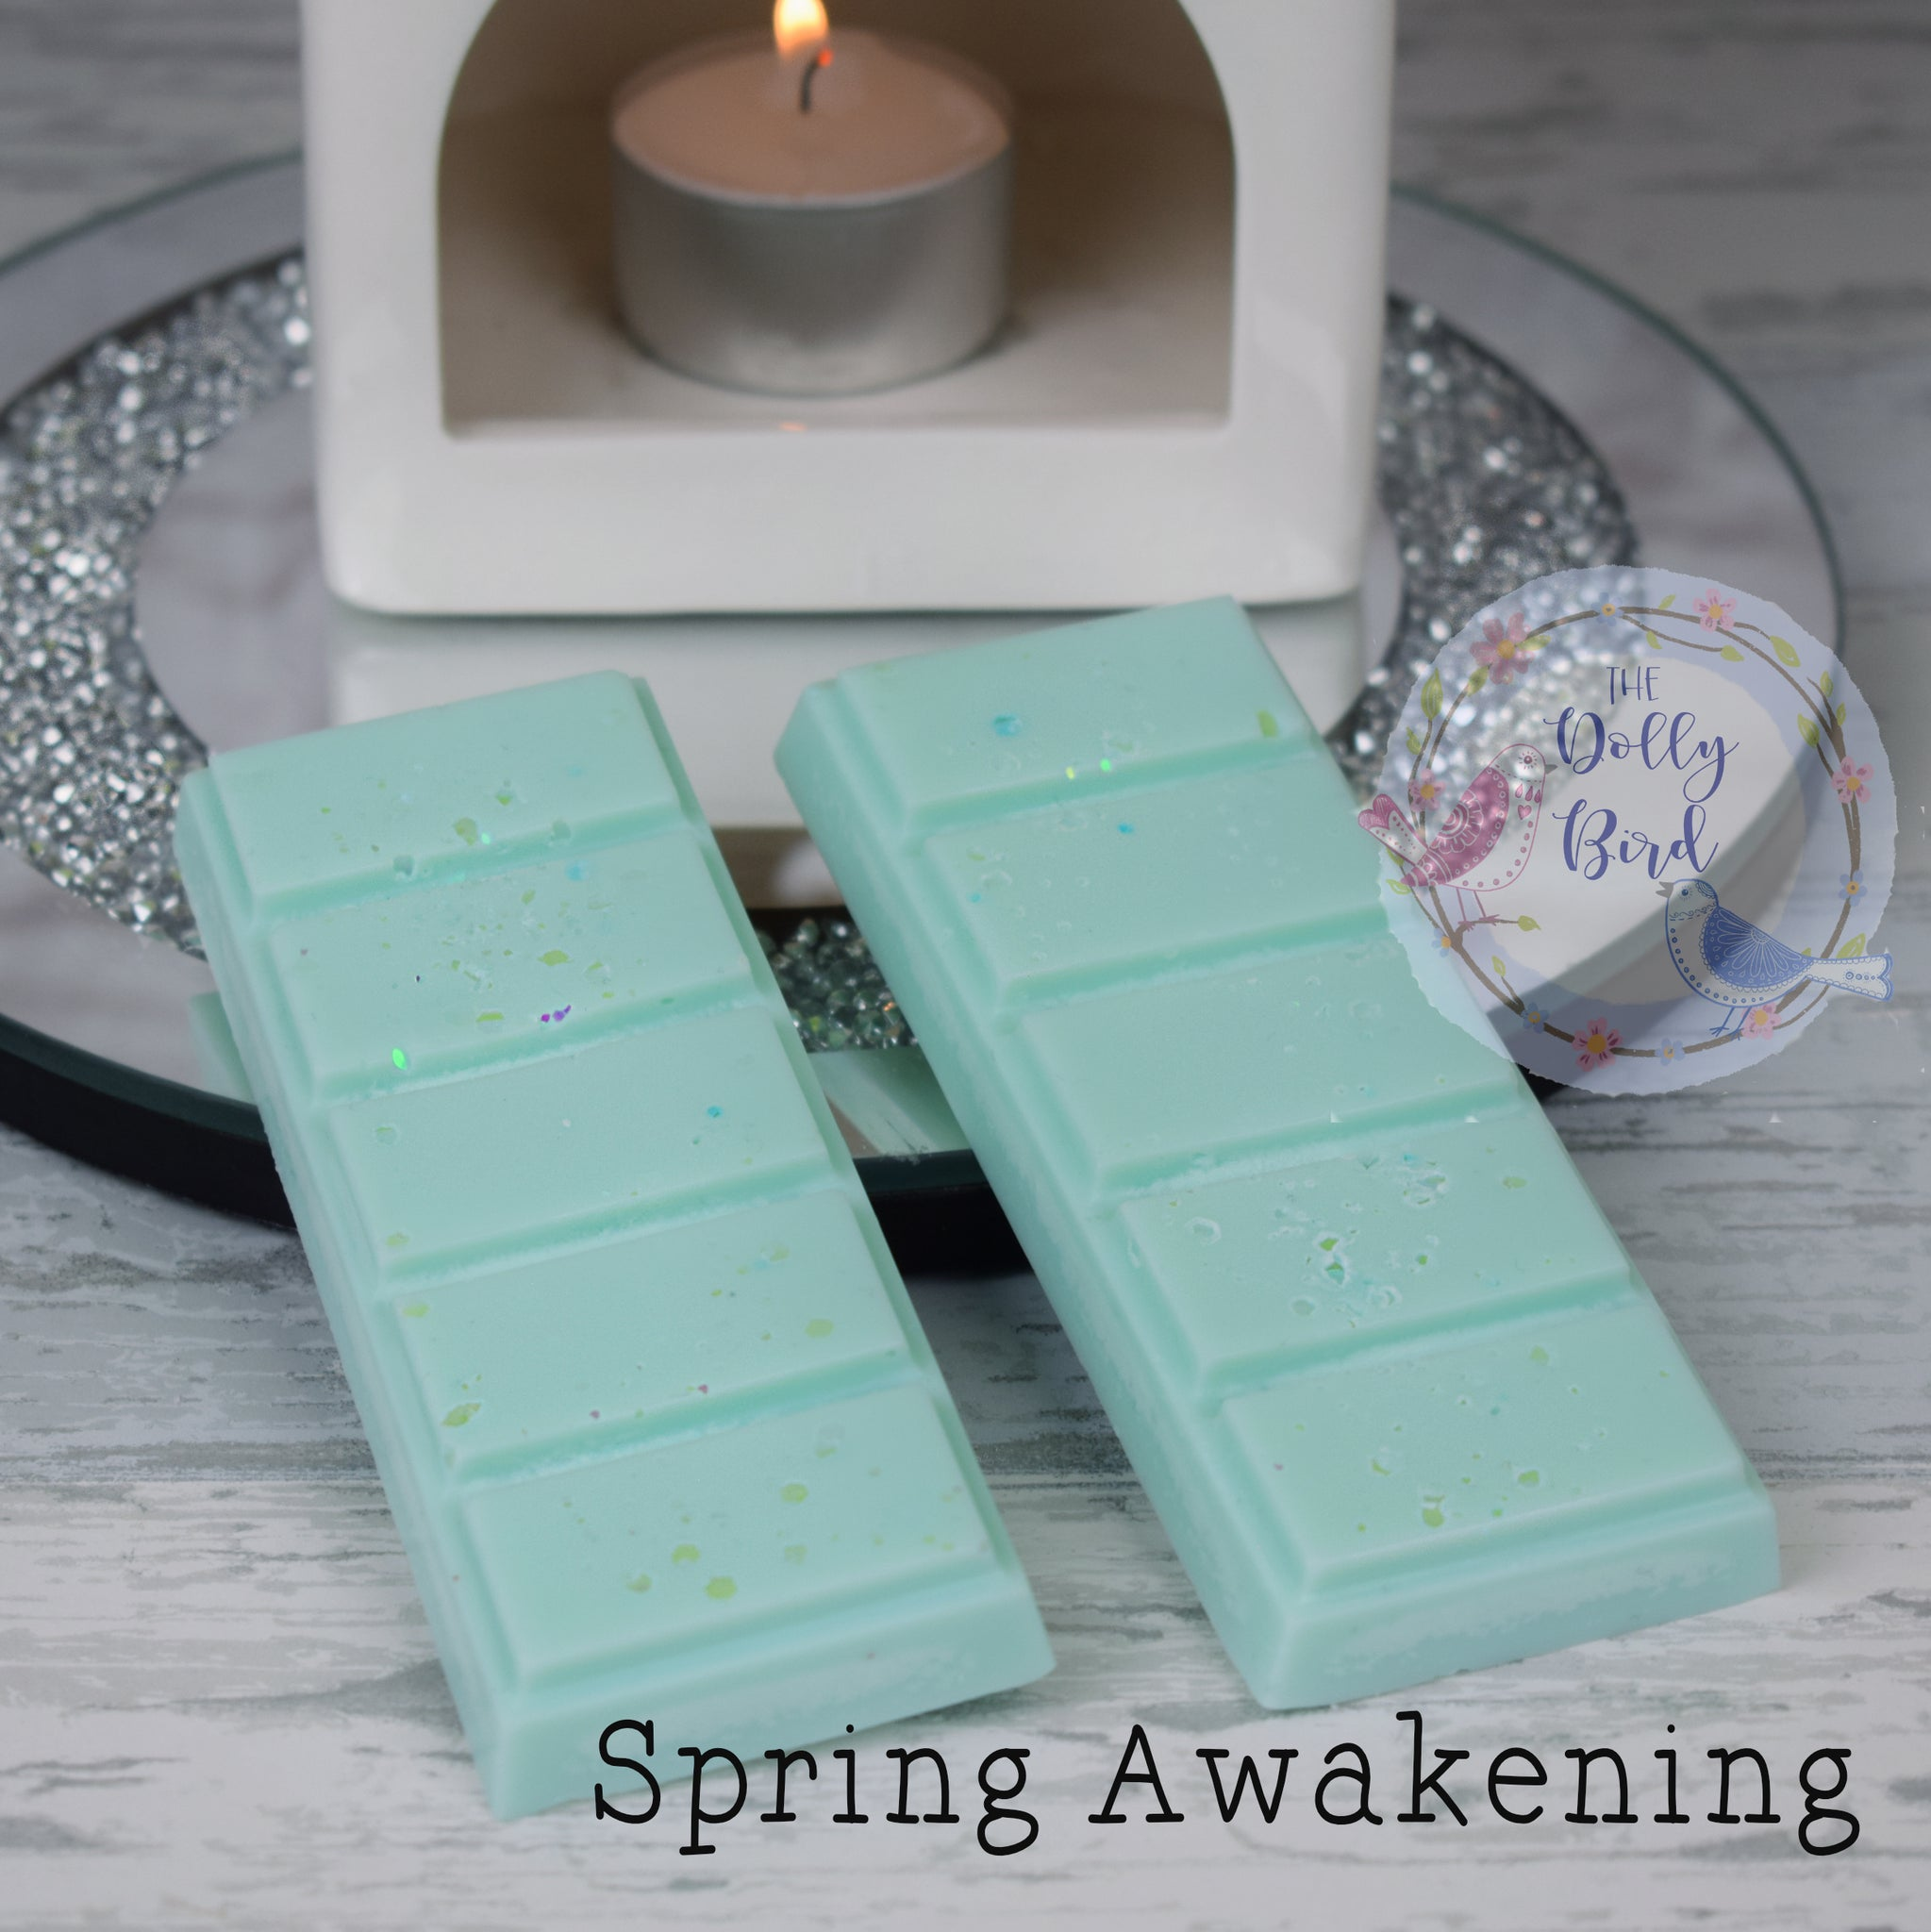 Spring Awakening Soy Wax Melt Snap Bar, Fabric Conditioner Scented Wax, Soy Wax Melts, Washing Scented Wax Melts, Fresh Scent Wax Melts